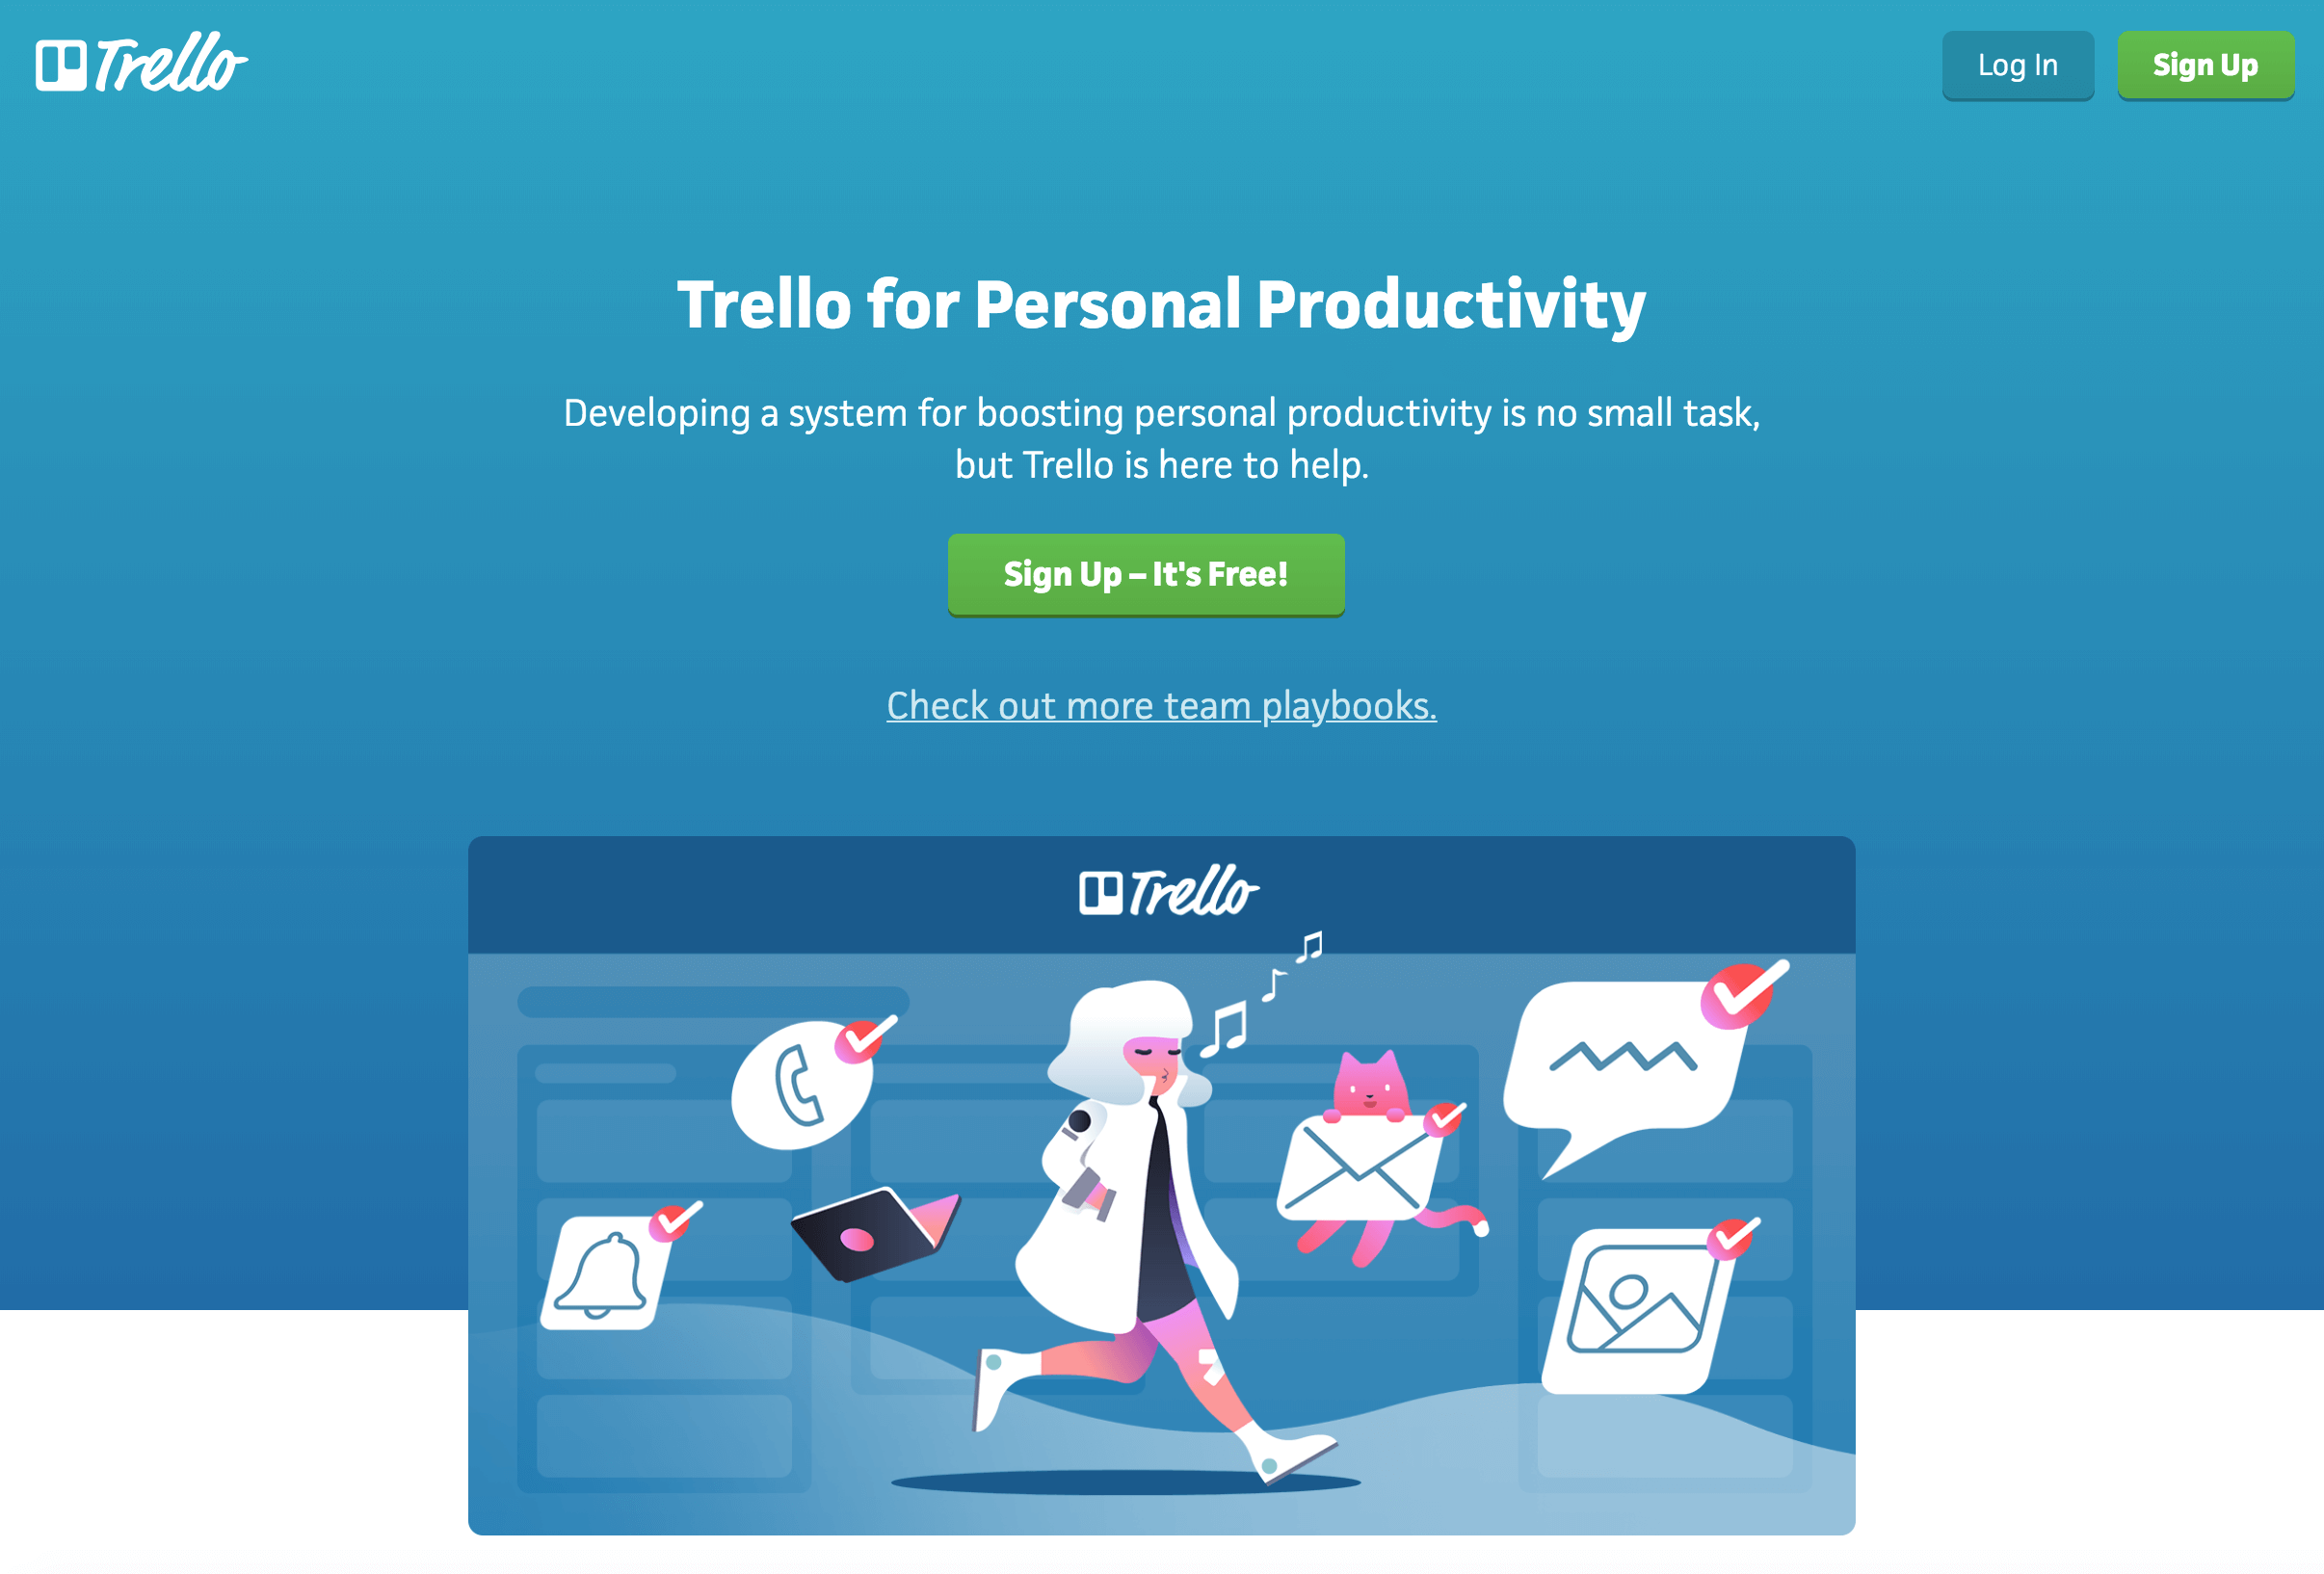 trello sign up